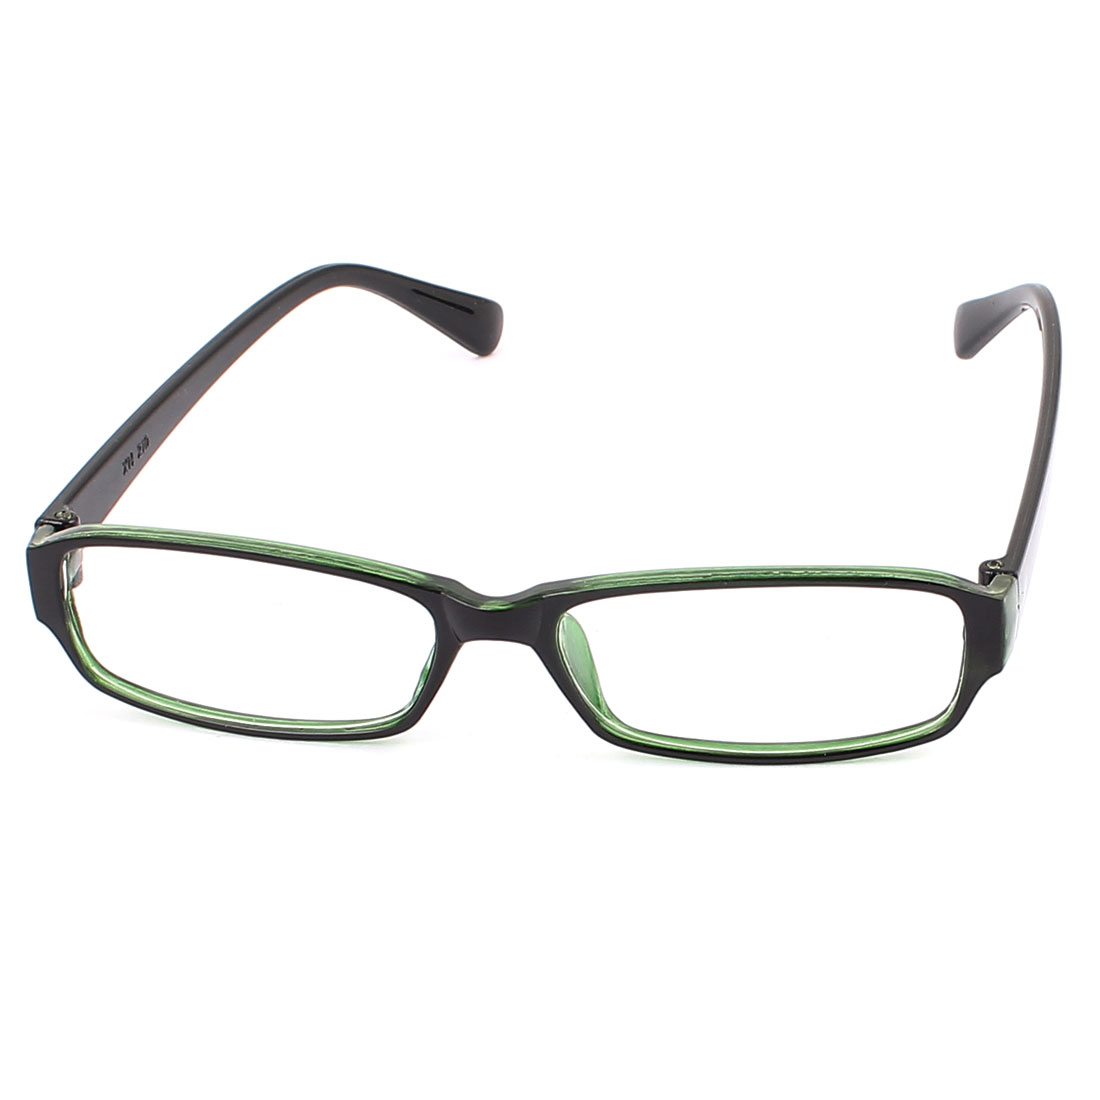 Clear Rectangle Lens Full Frame Eyewear Plain Plano Glasses Spectacles Green